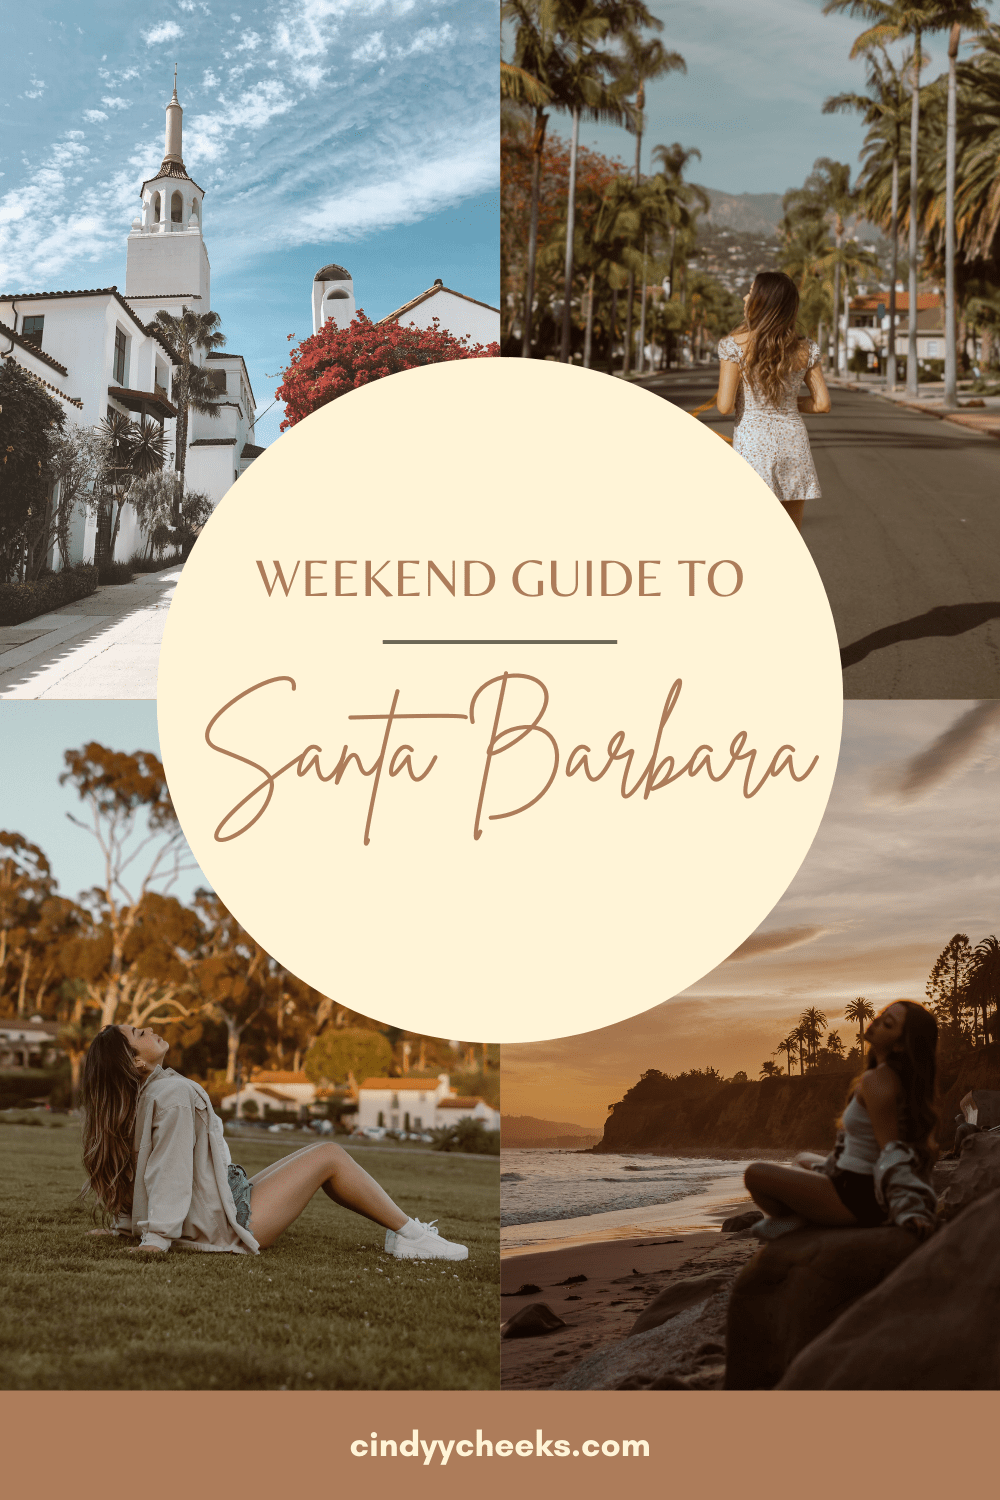 Weekend Guide to Santa Barbara - this guide includes dreamy places in Santa Barbara, creative photography, where to eat in Santa Barbara, and things to do!